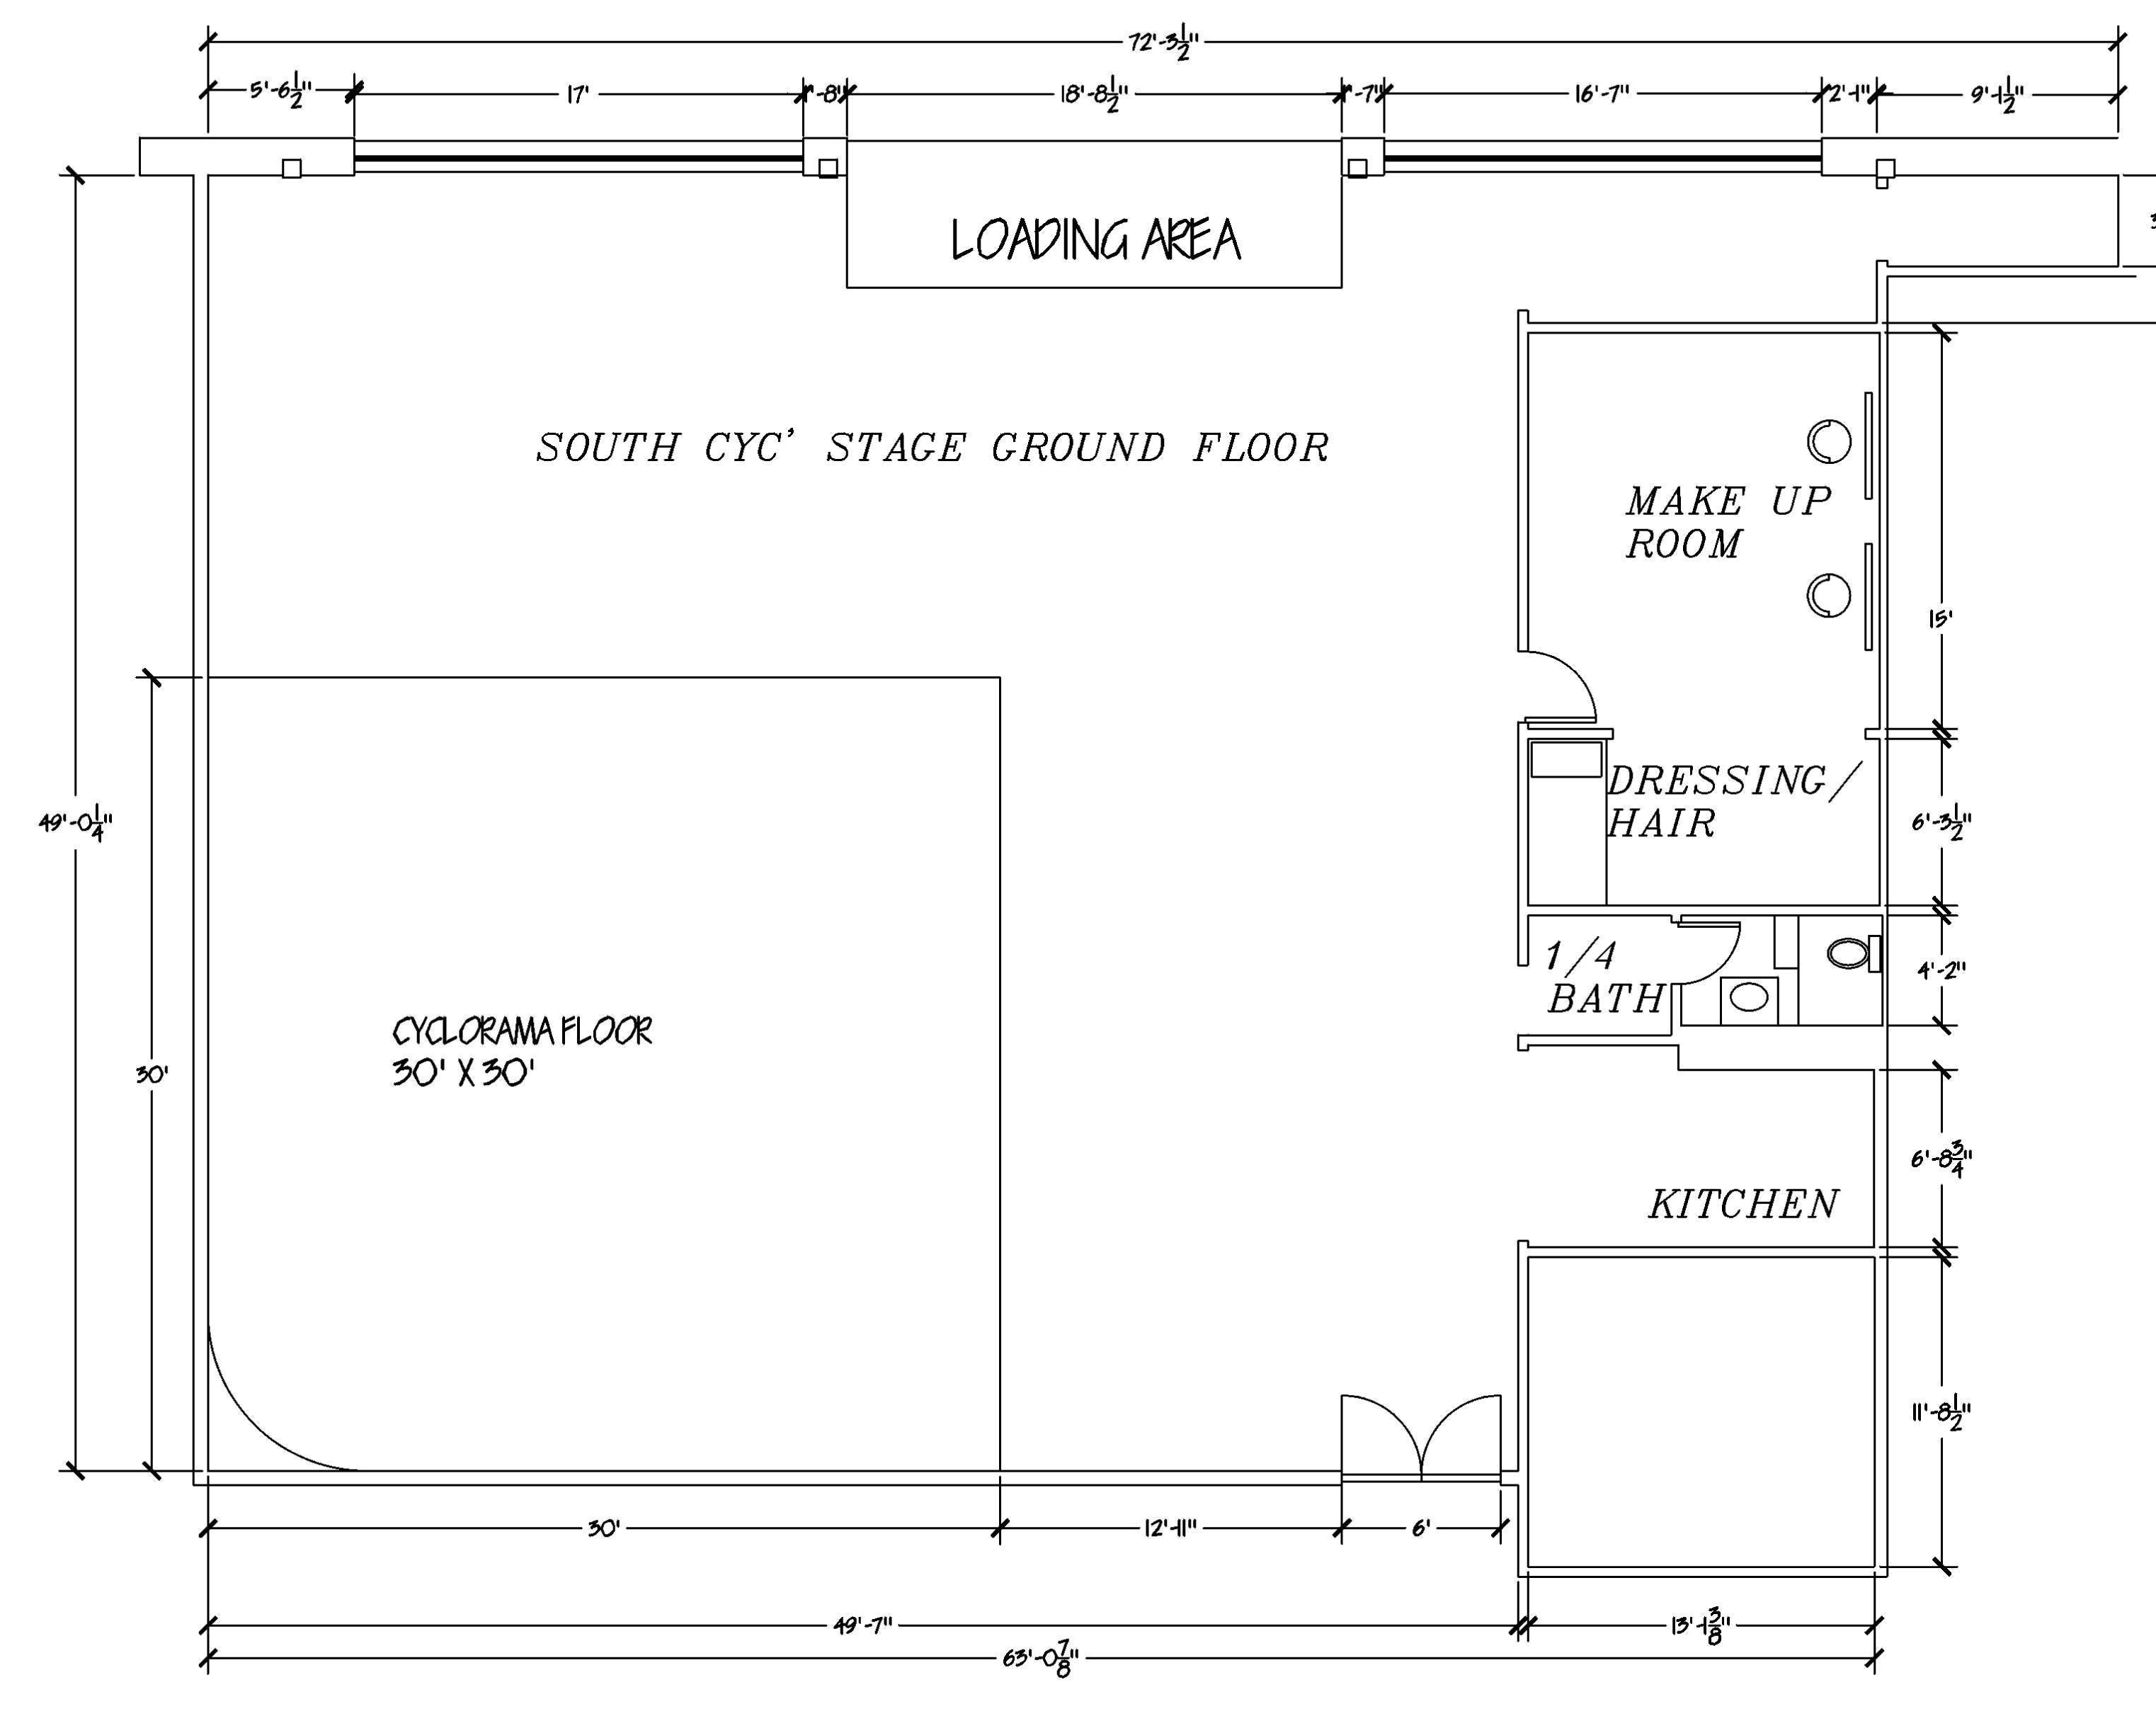 South Cyc Stage floor plan